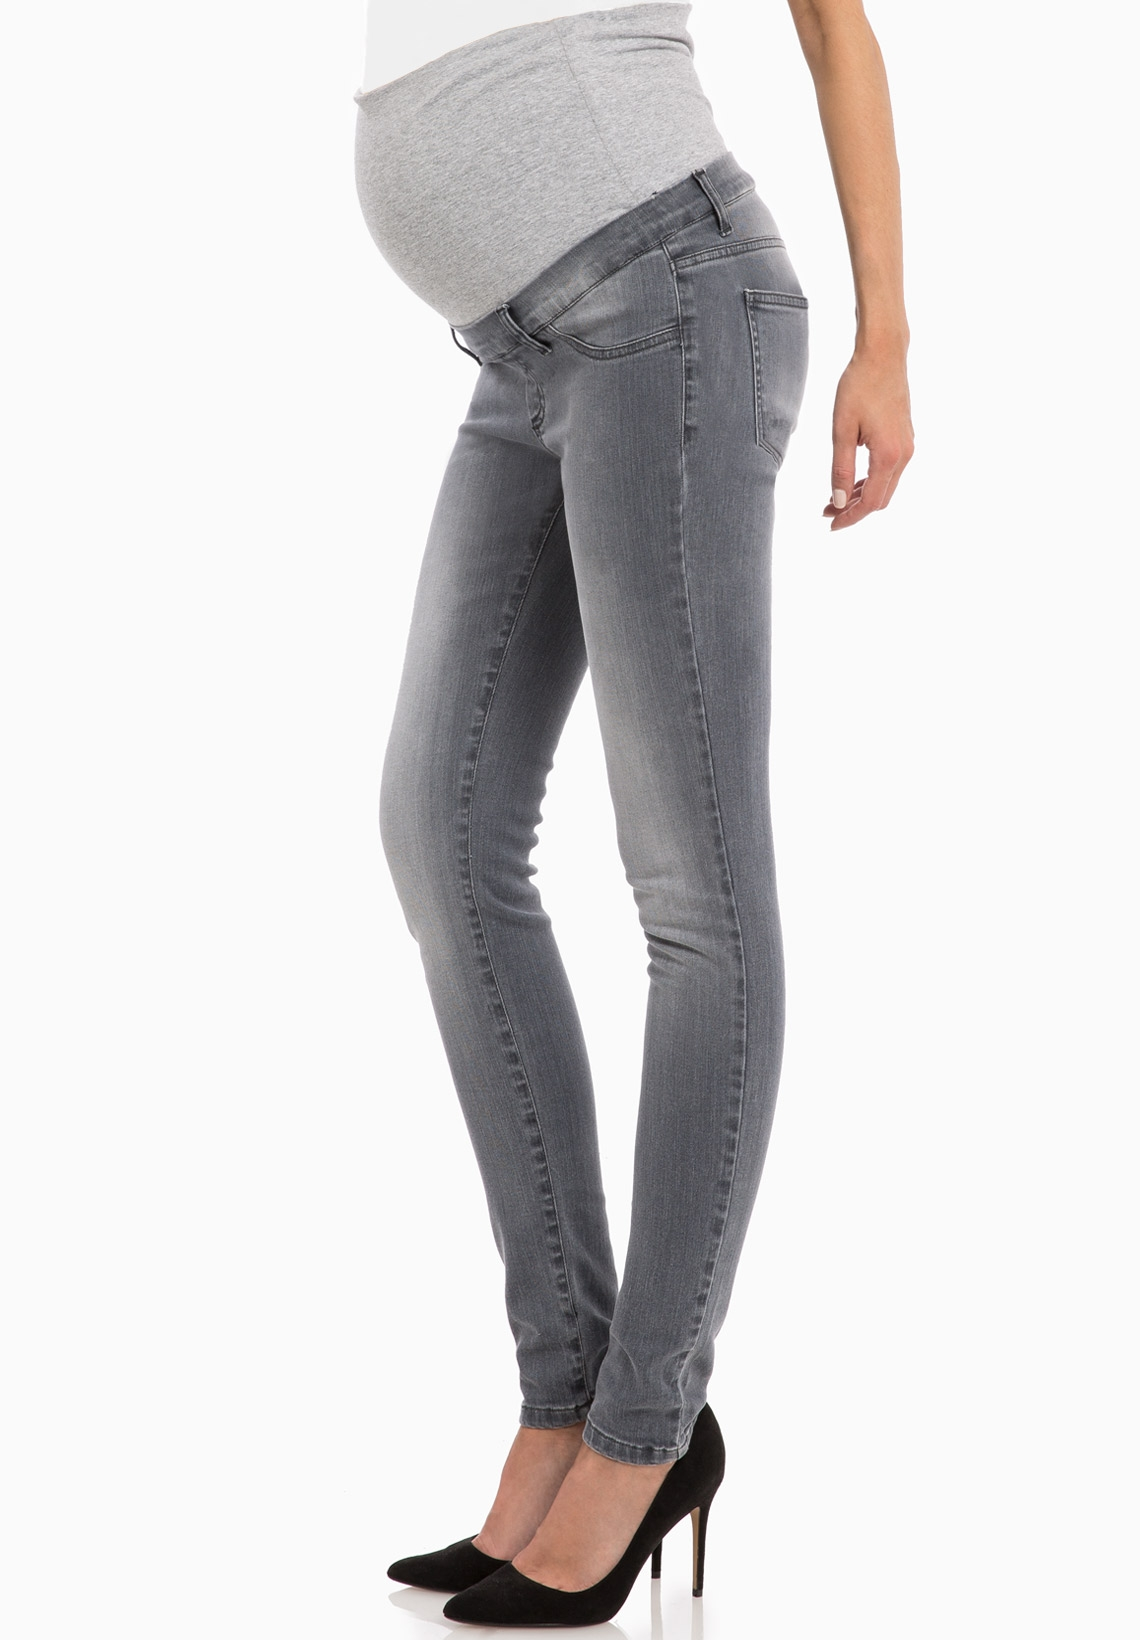 Skinny maternity jeans. Skinny jeans are a mainstay of women's fashion, so it's no surprise that lots of maternity jeans also have this cut. Skinny jeans are fitted through the thighs, calves, and ankles, making them a complementary choice for .